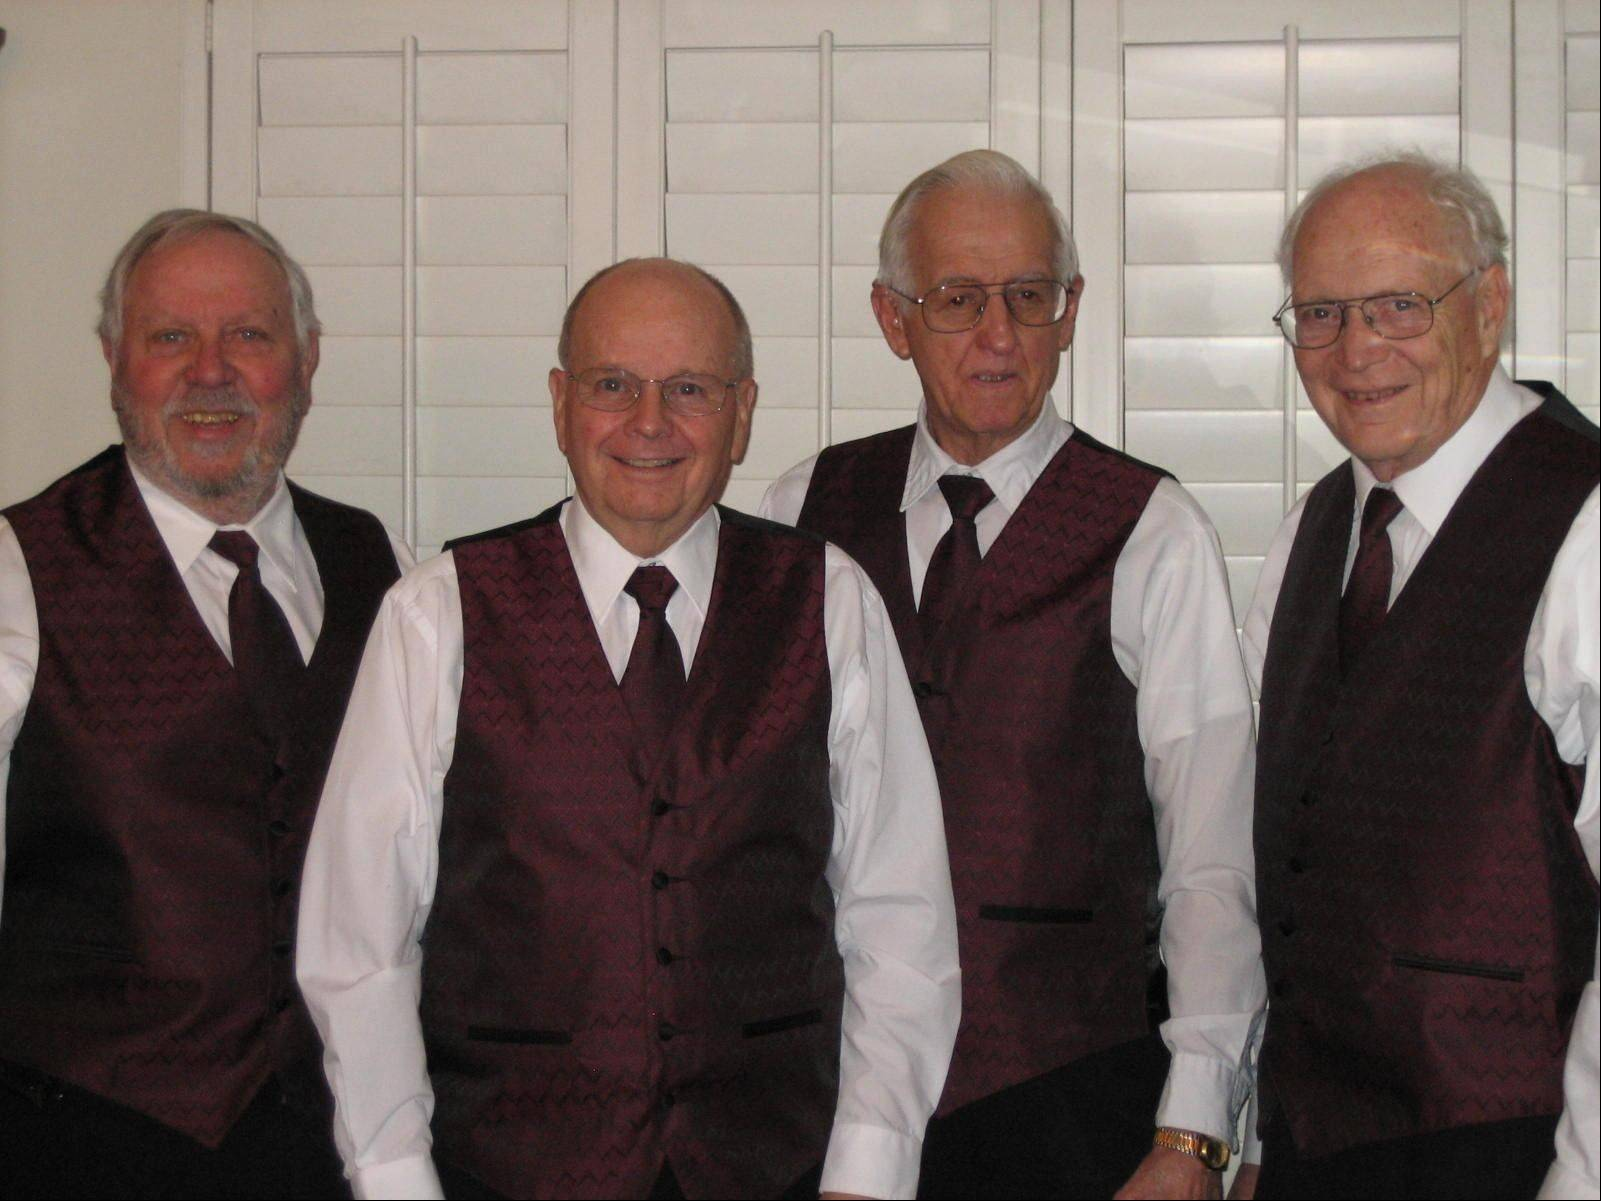 The Clefhanges, a barbershop quartet, will be one of the highlights of McHenry County Historical Society's annual Heritage Fair Sunday, July 10.